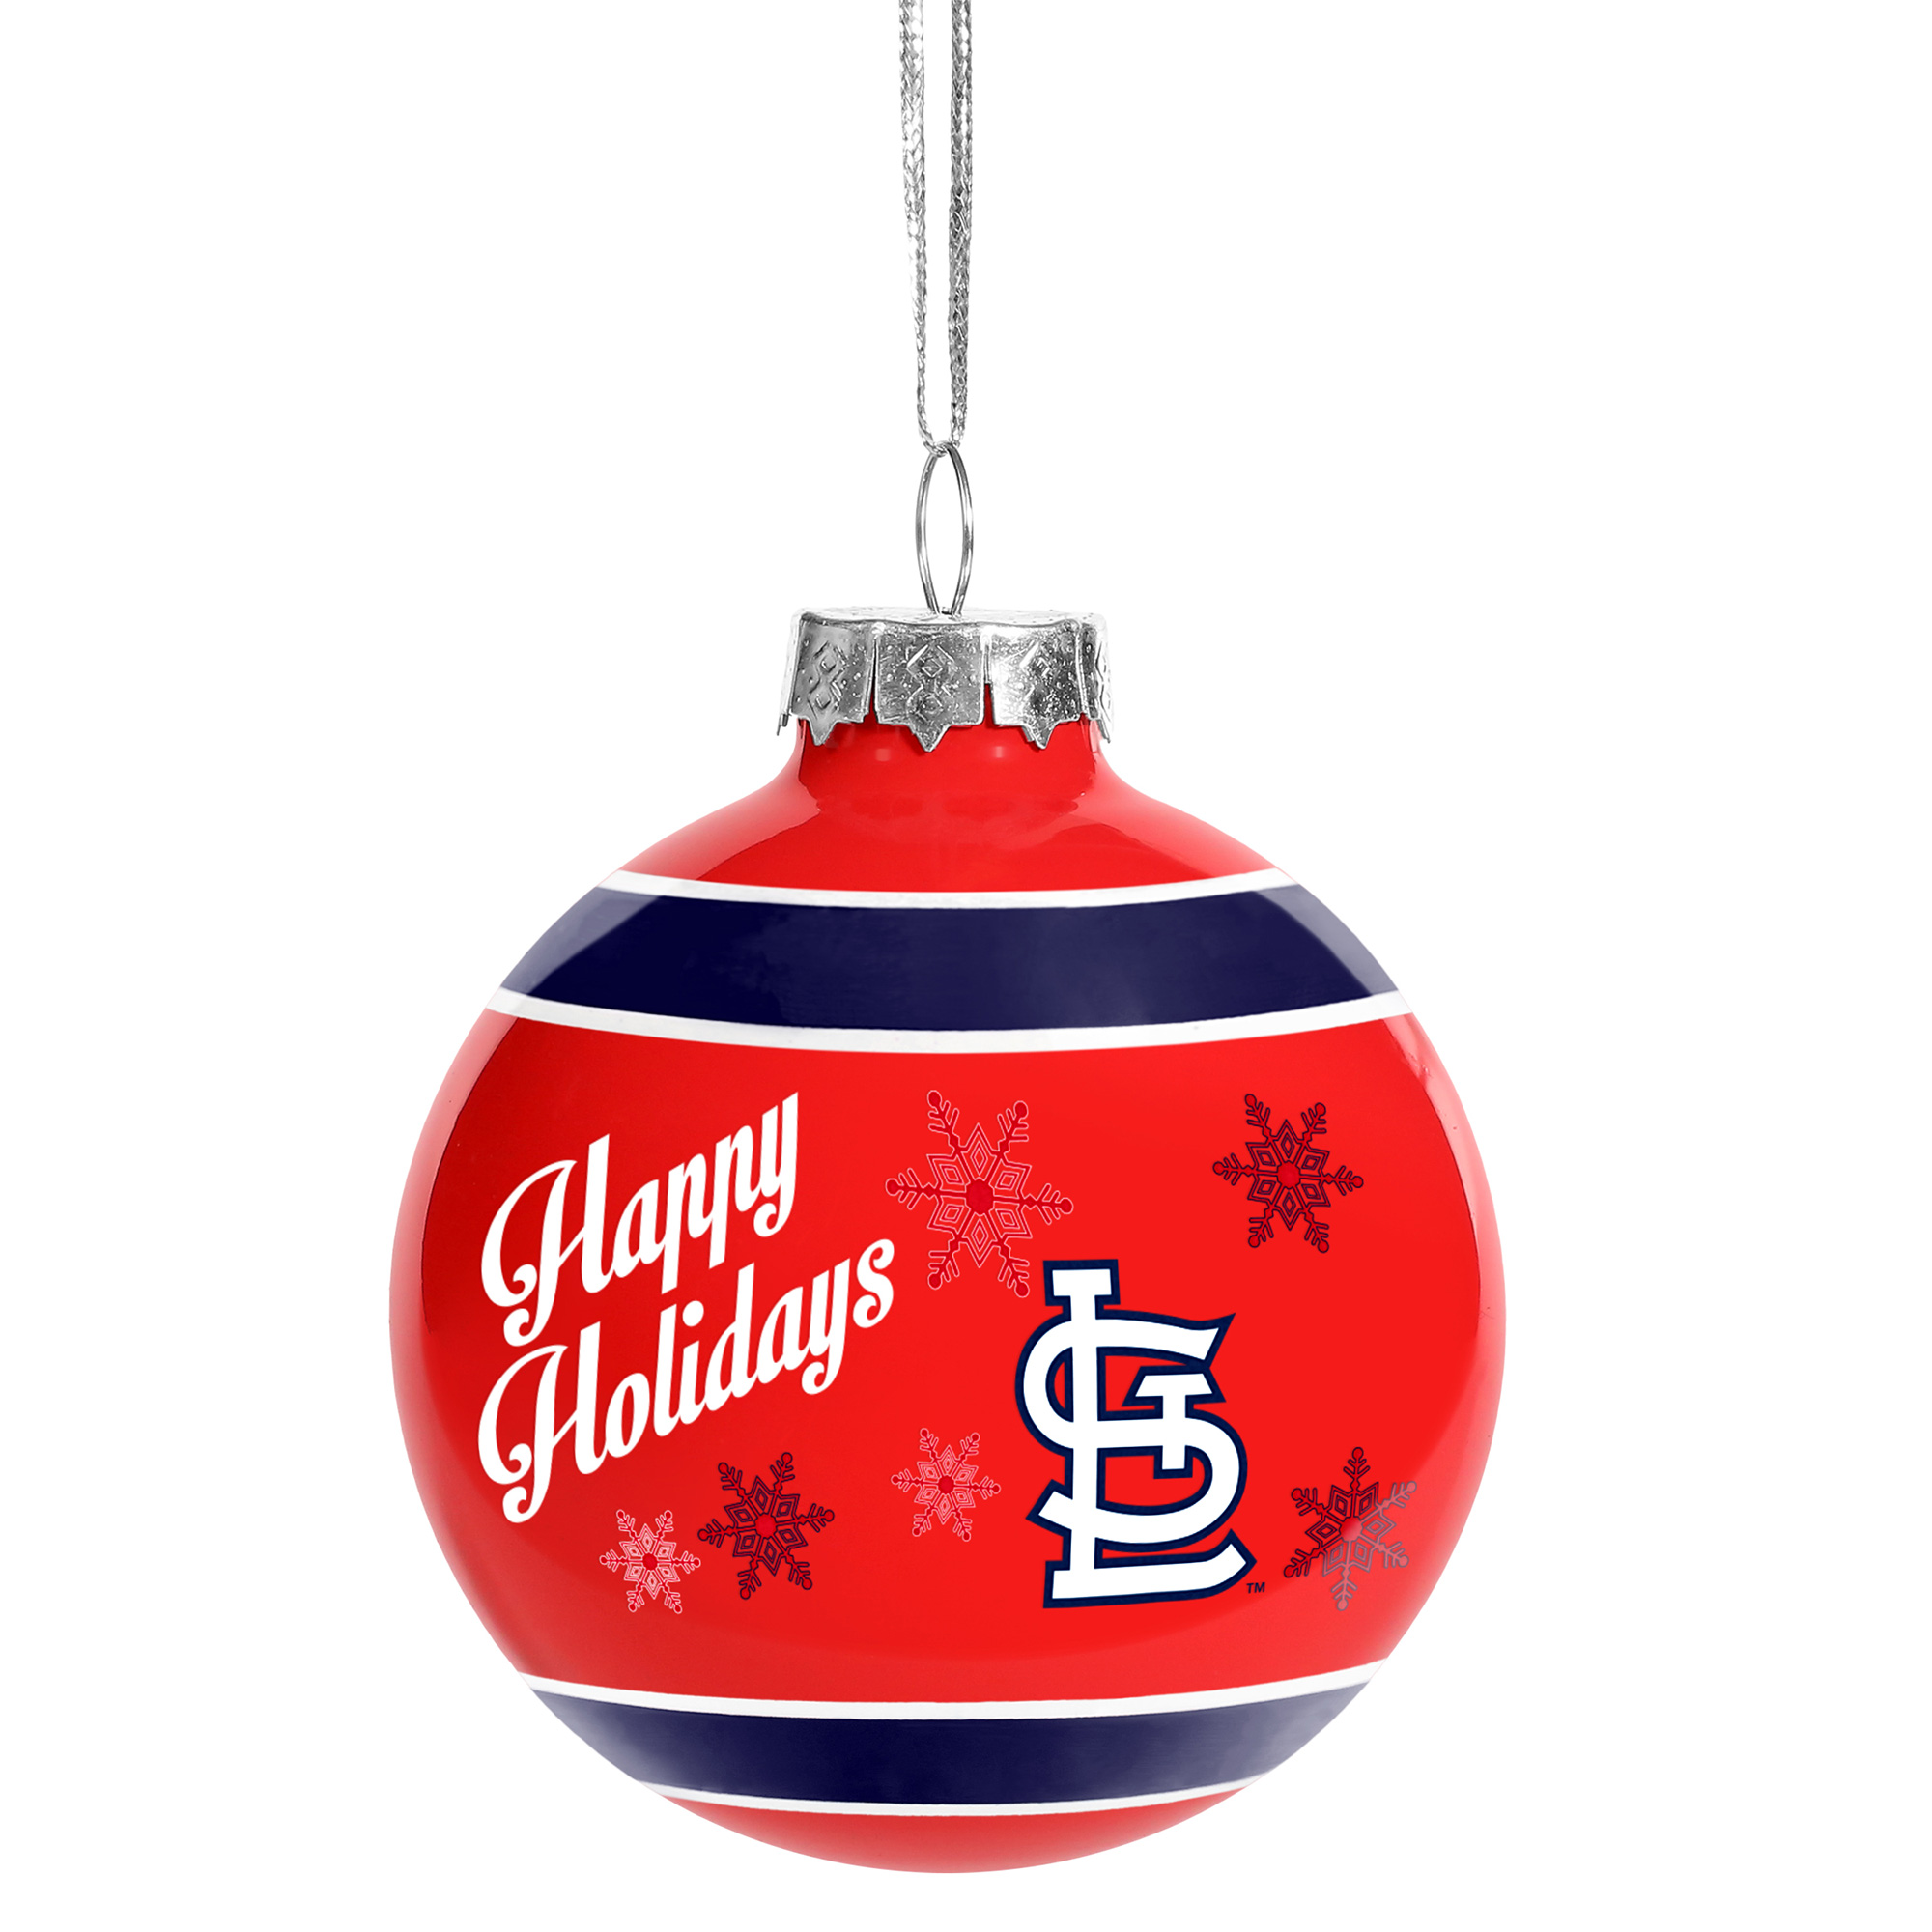 St. Louis Cardinals Happy Holidays Glass Ball Ornament - No Size